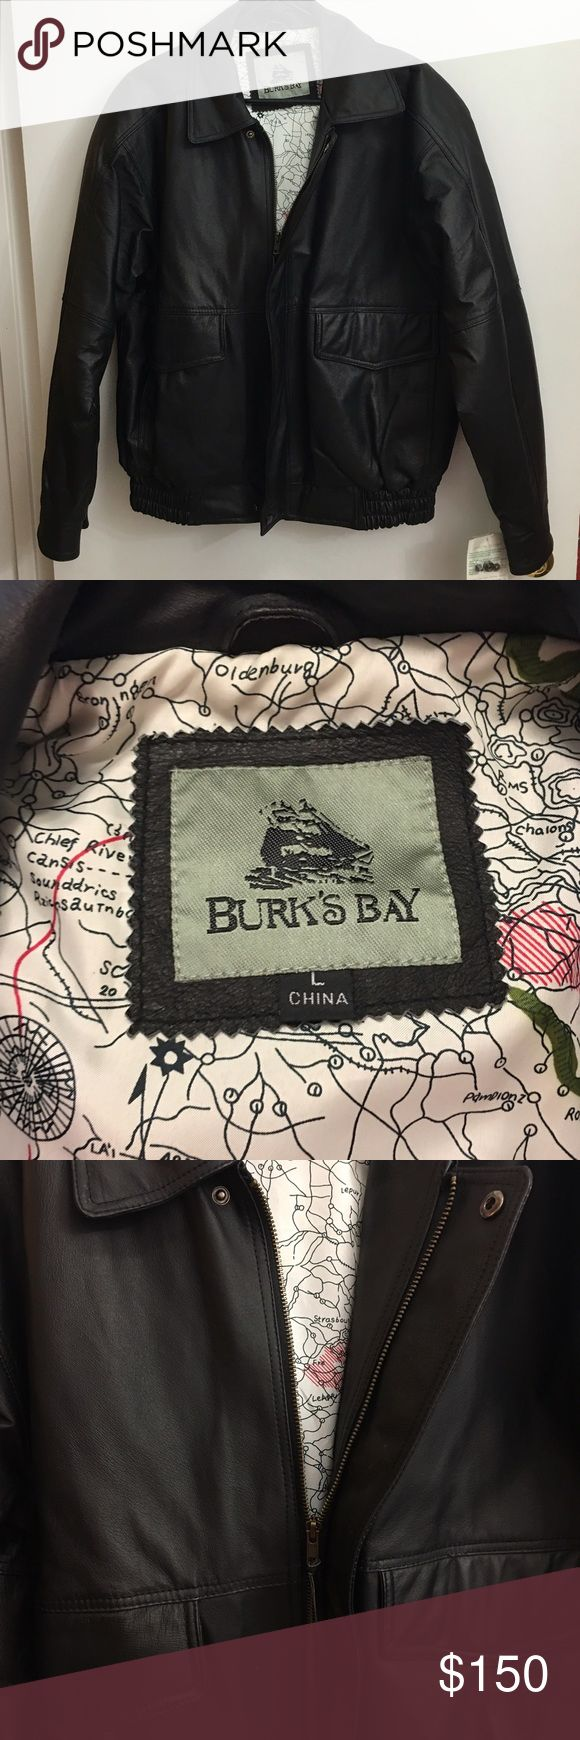 💥PRICE DROP💥 Burk's Bay Women's Leather Coat Brand new with tags Burk's Bay genuine leather coat. Black. Size large. Style #1010. New with tags. Also has extra snap parts if needed. Smoke and pet free home. Burk's Bay Jackets & Coats